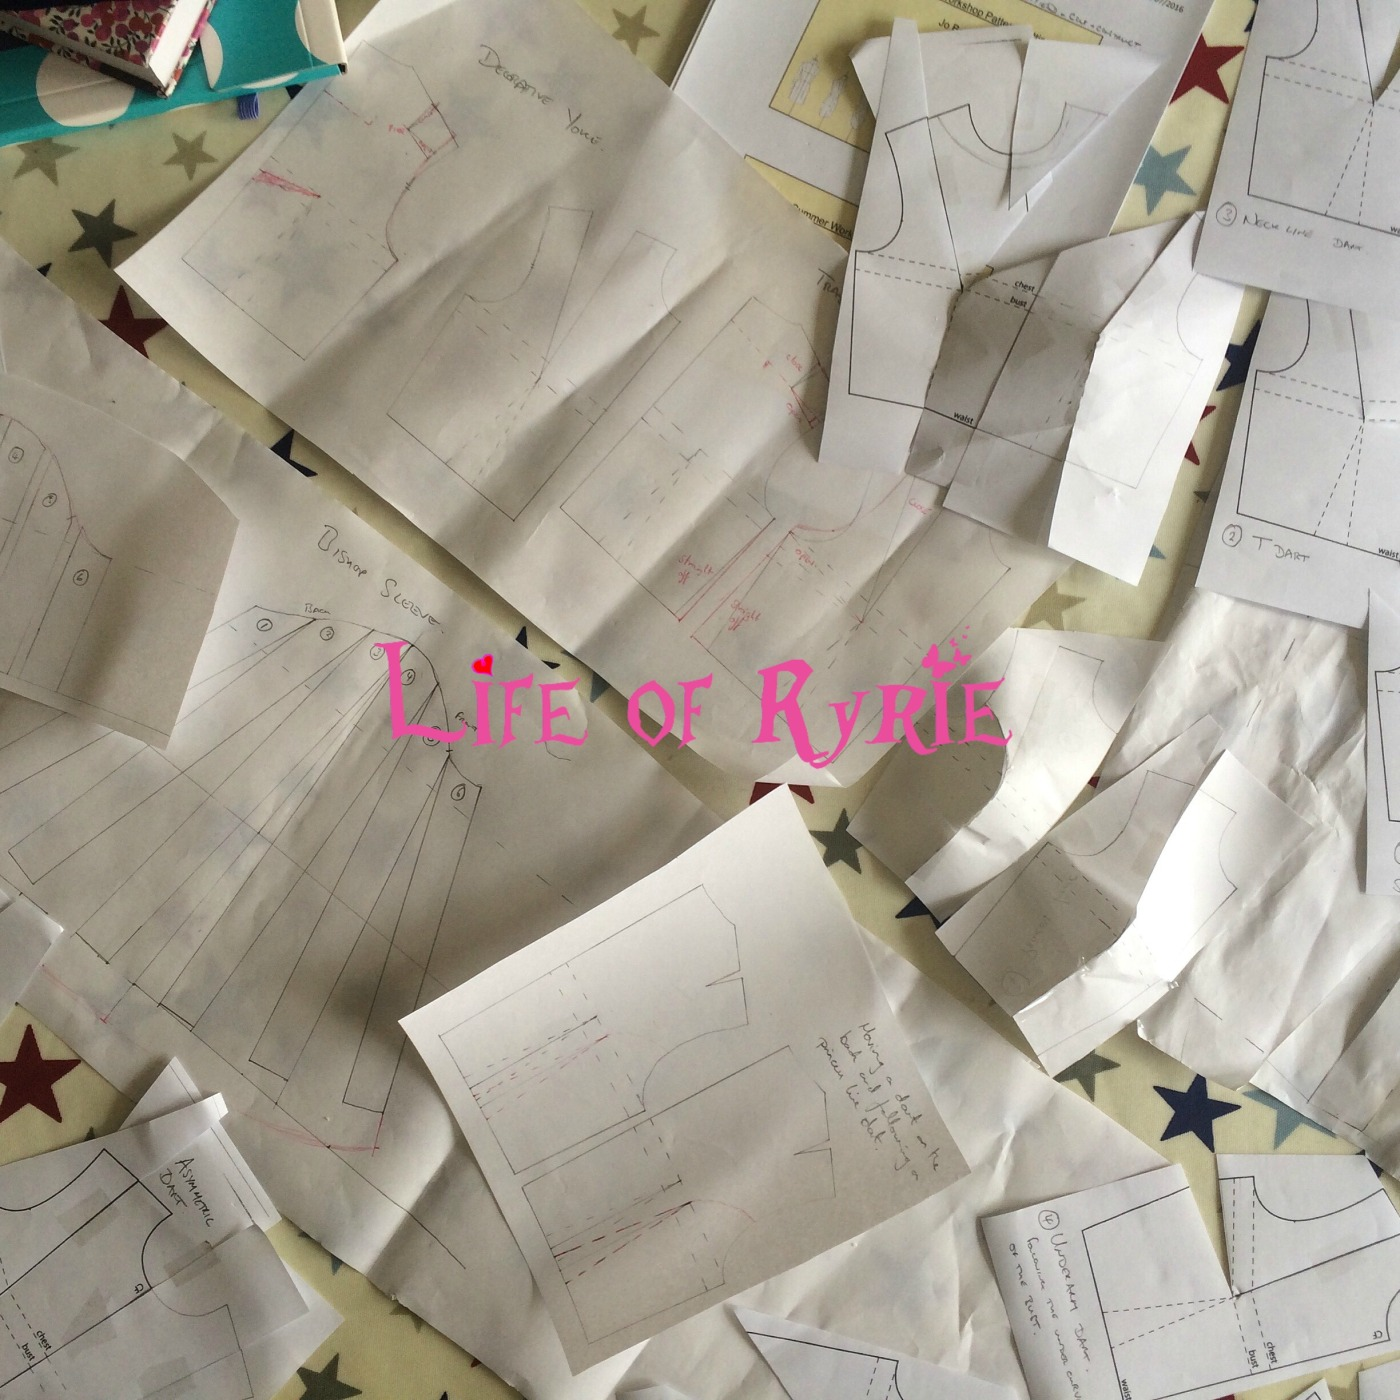 paper garment patterns scattered across a table